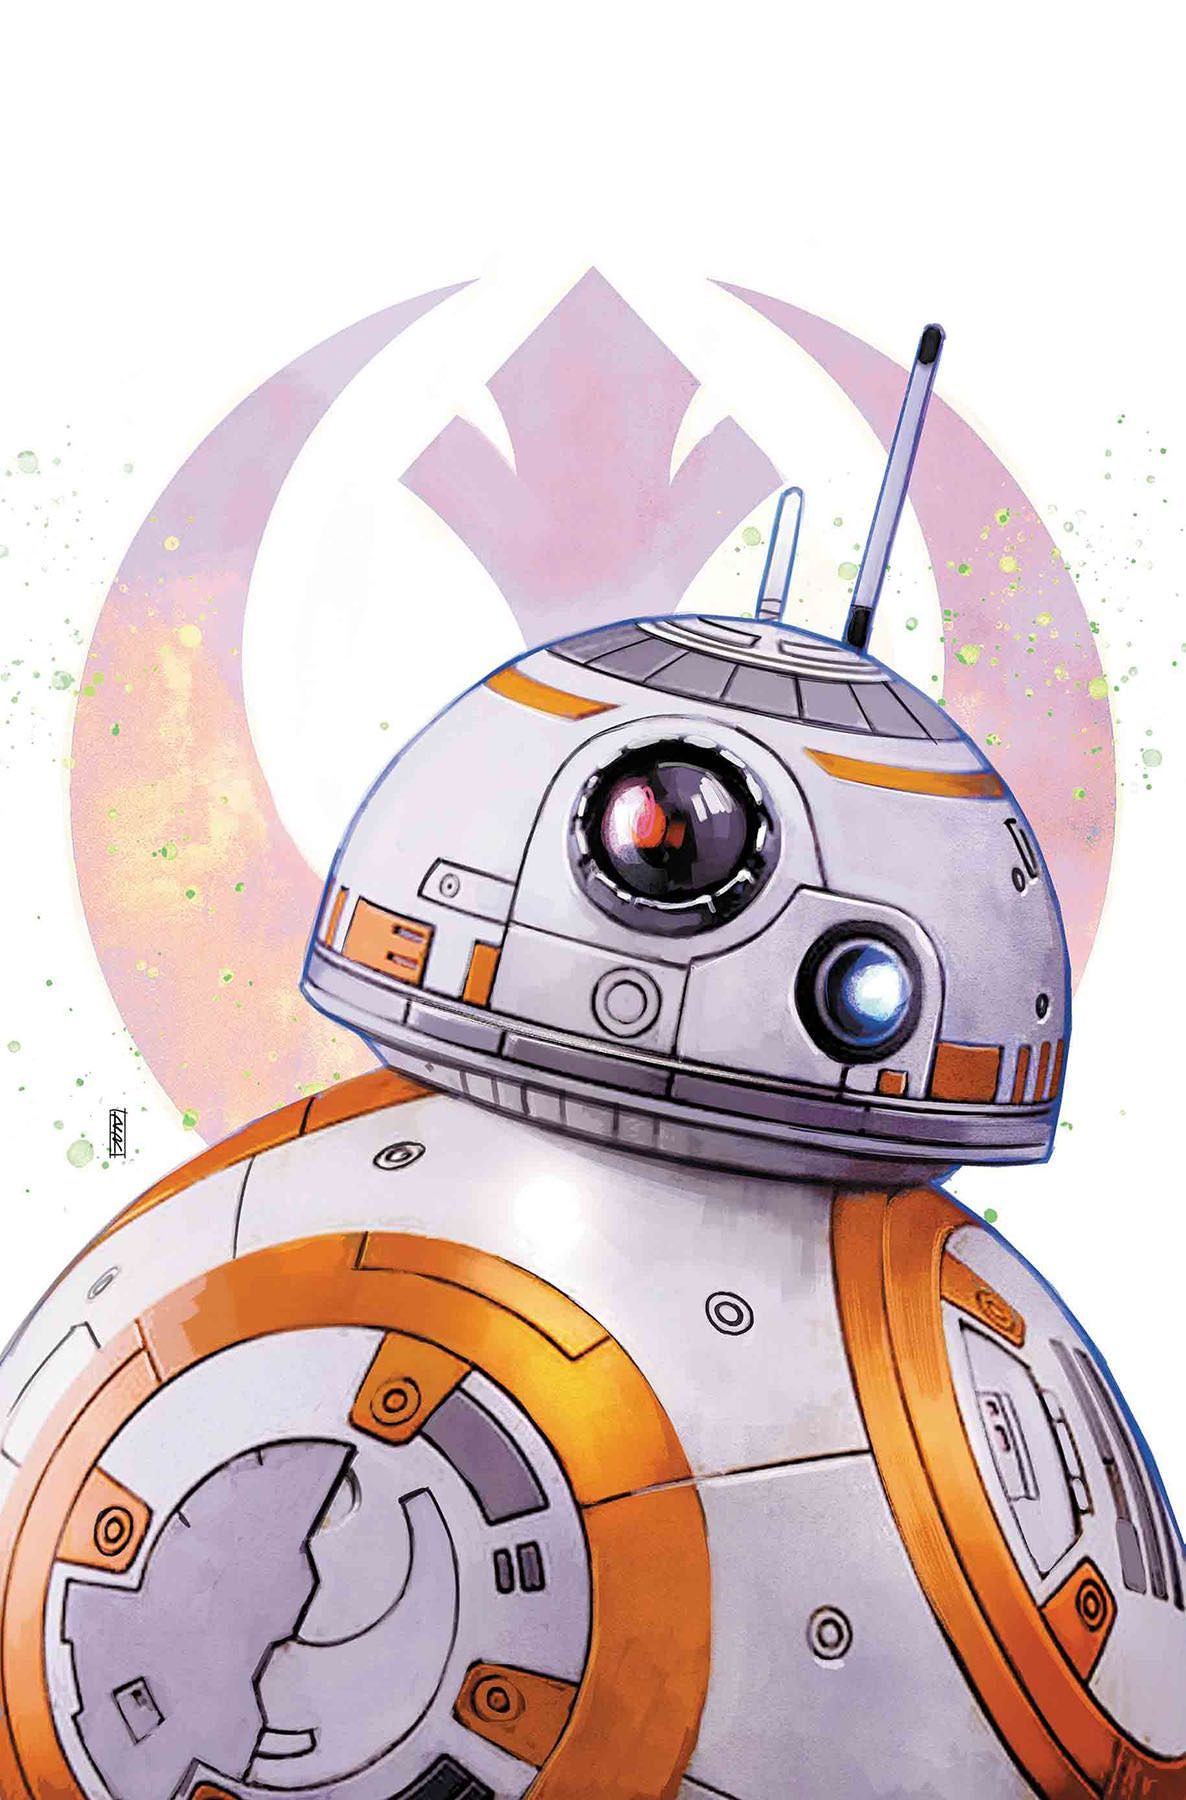 Comic Cartoon Themed Wallpapers For Desktop And Mobile Star Wars Drawings Star Wars Background Star Wars Wallpaper